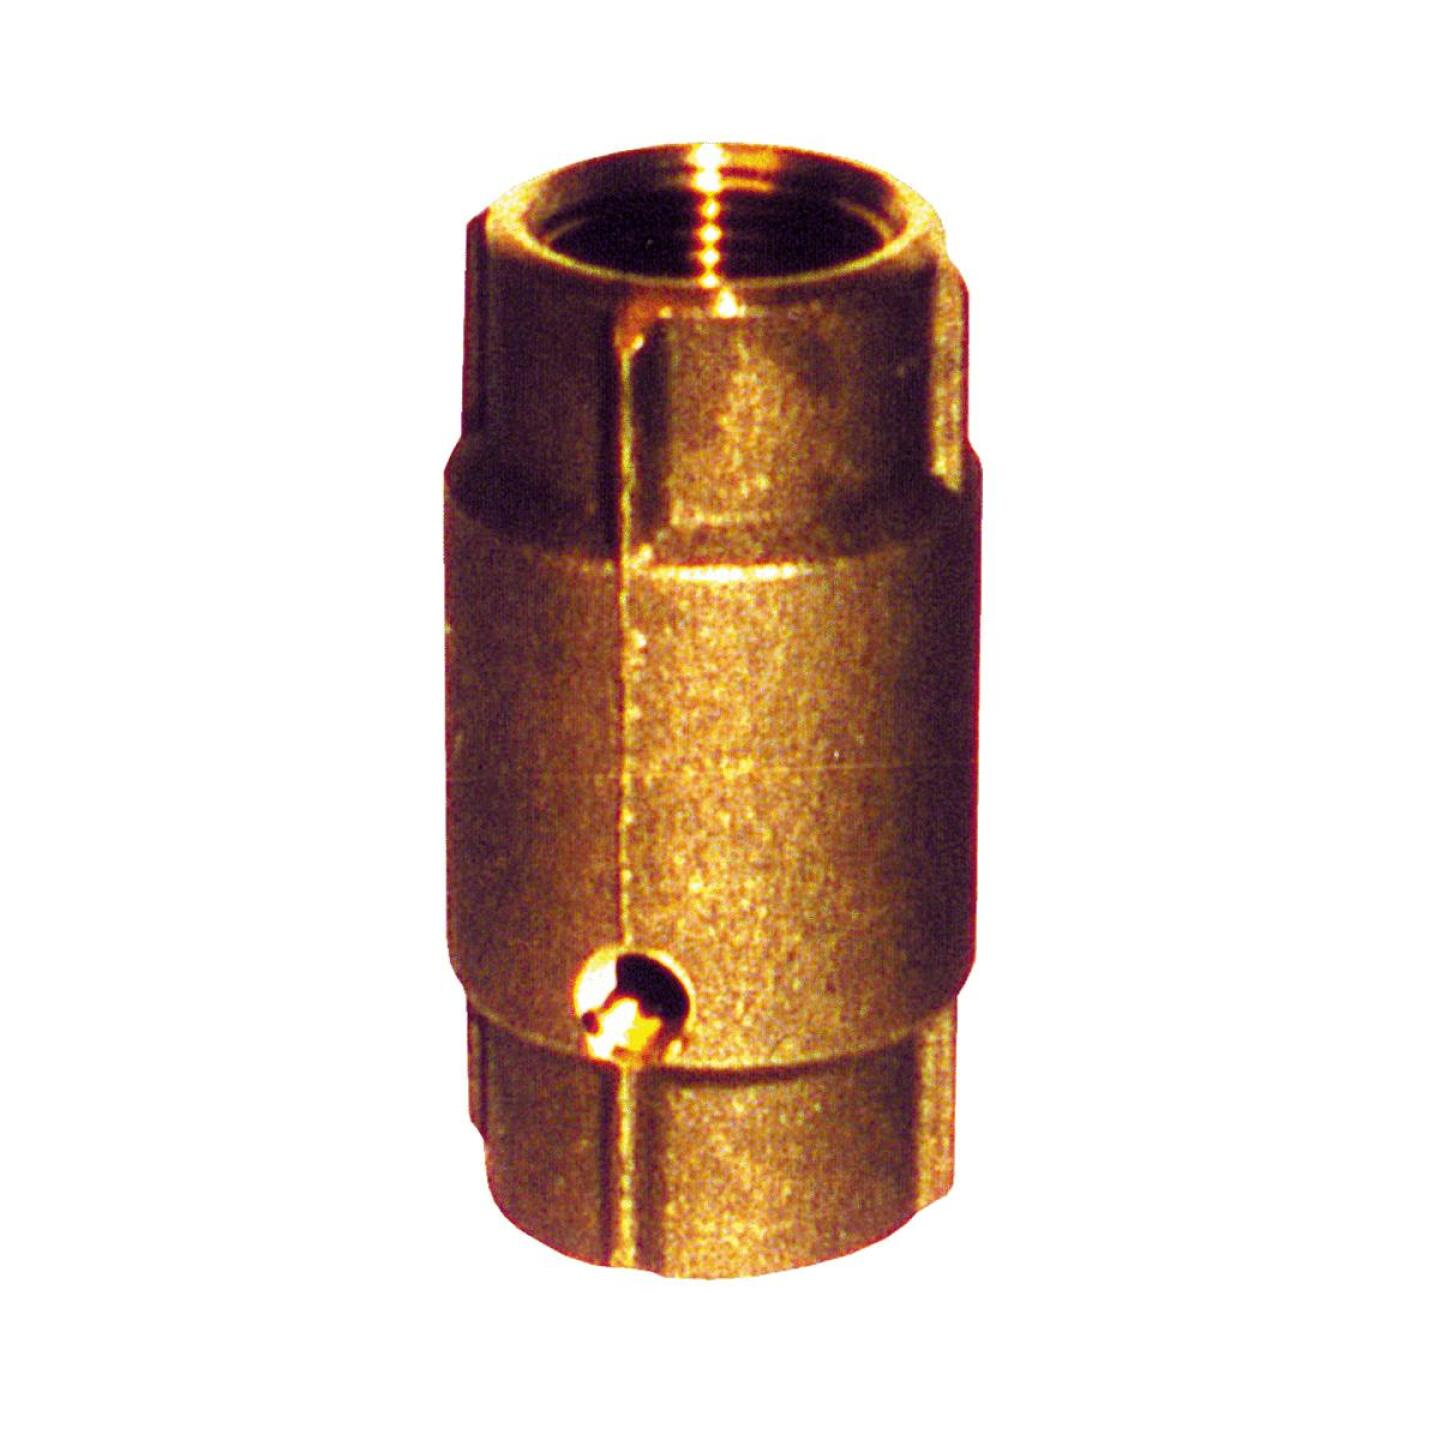 Simmons 1 In. Silicon Bronze Spring Loaded Check Valve Image 1